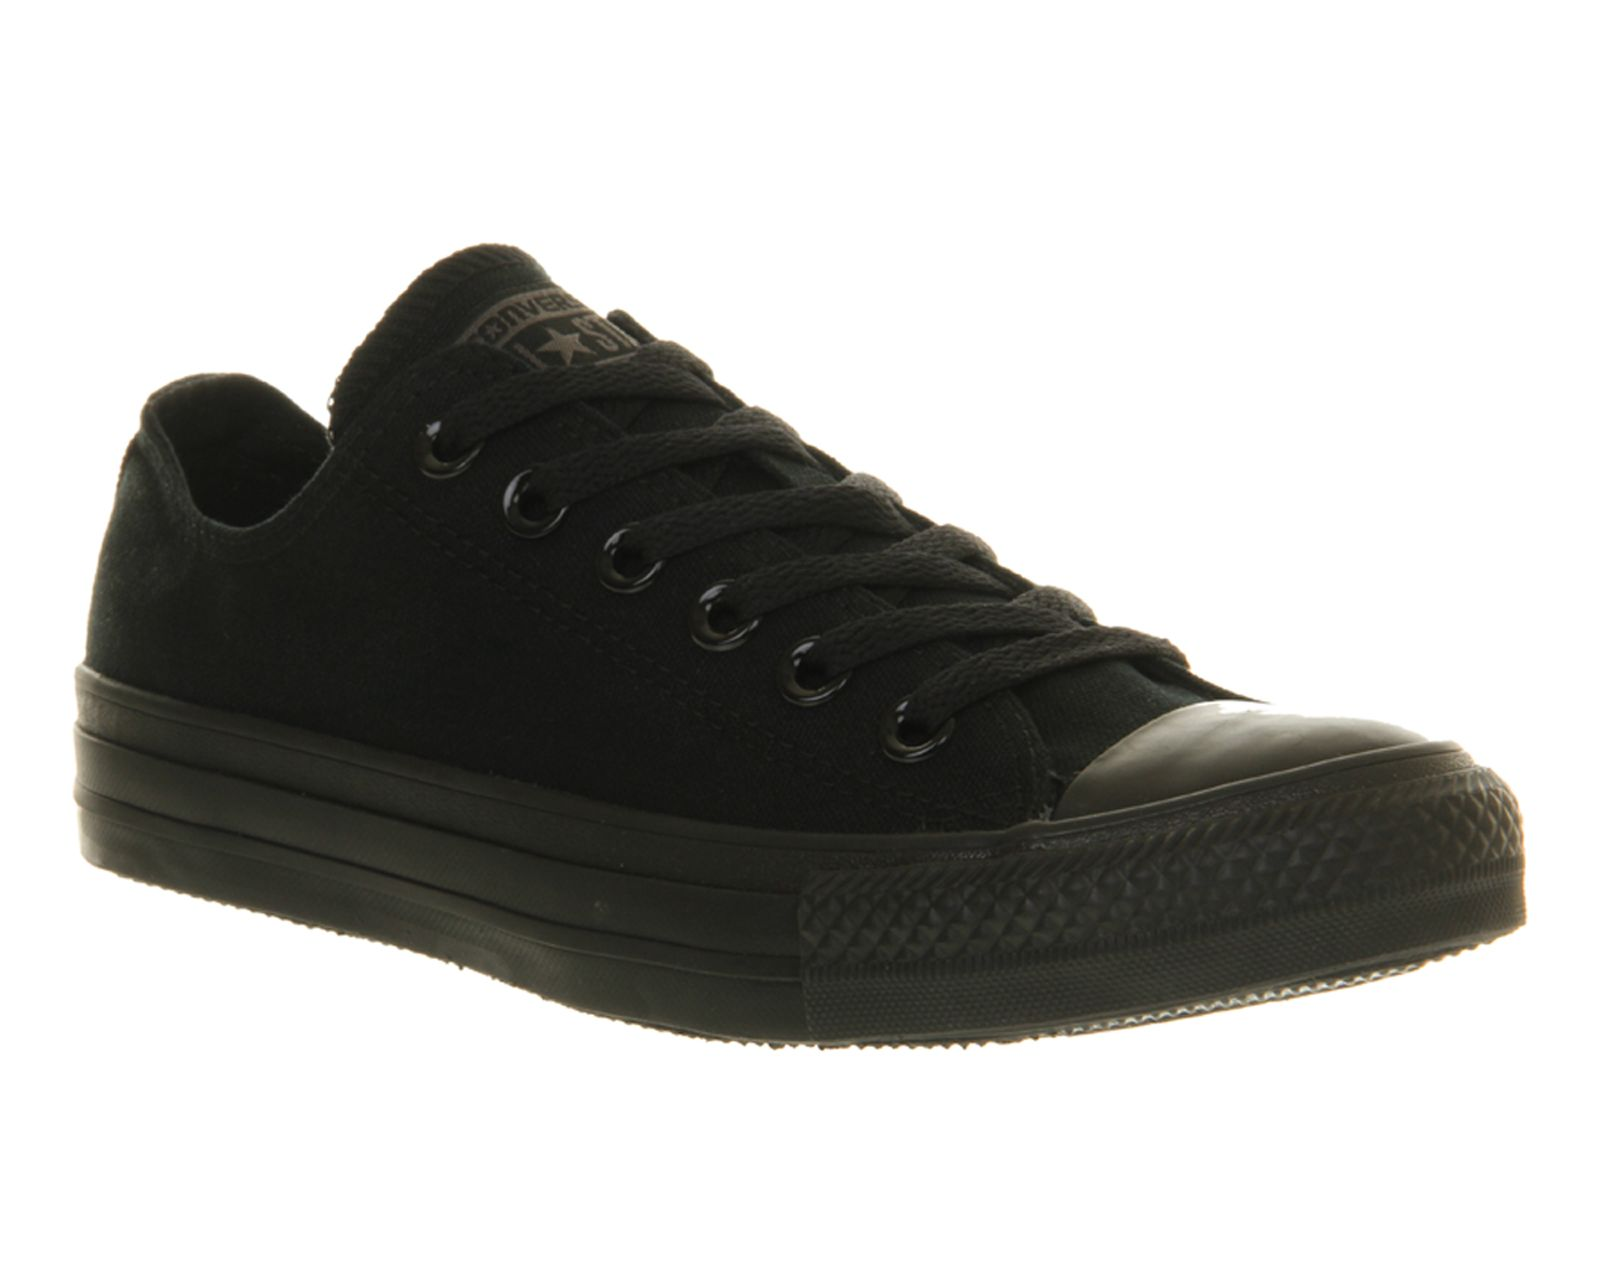 Converse All star low trainer, Black